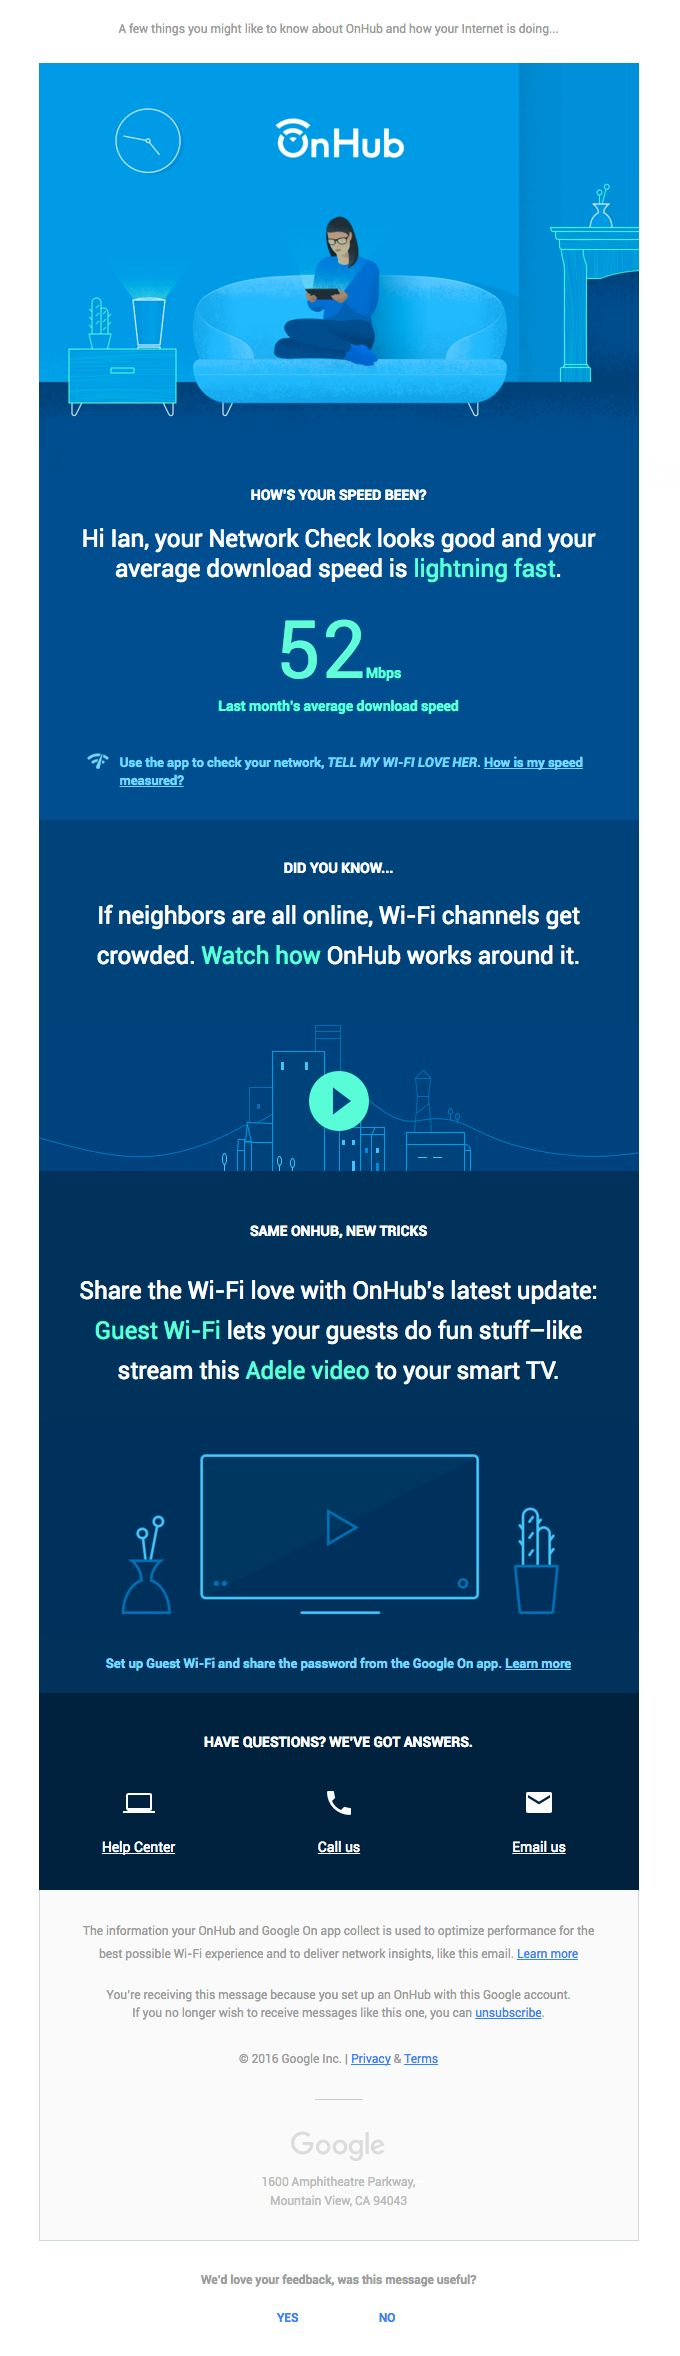 Hello from OnHub! Want to see how fast your Internet speed is